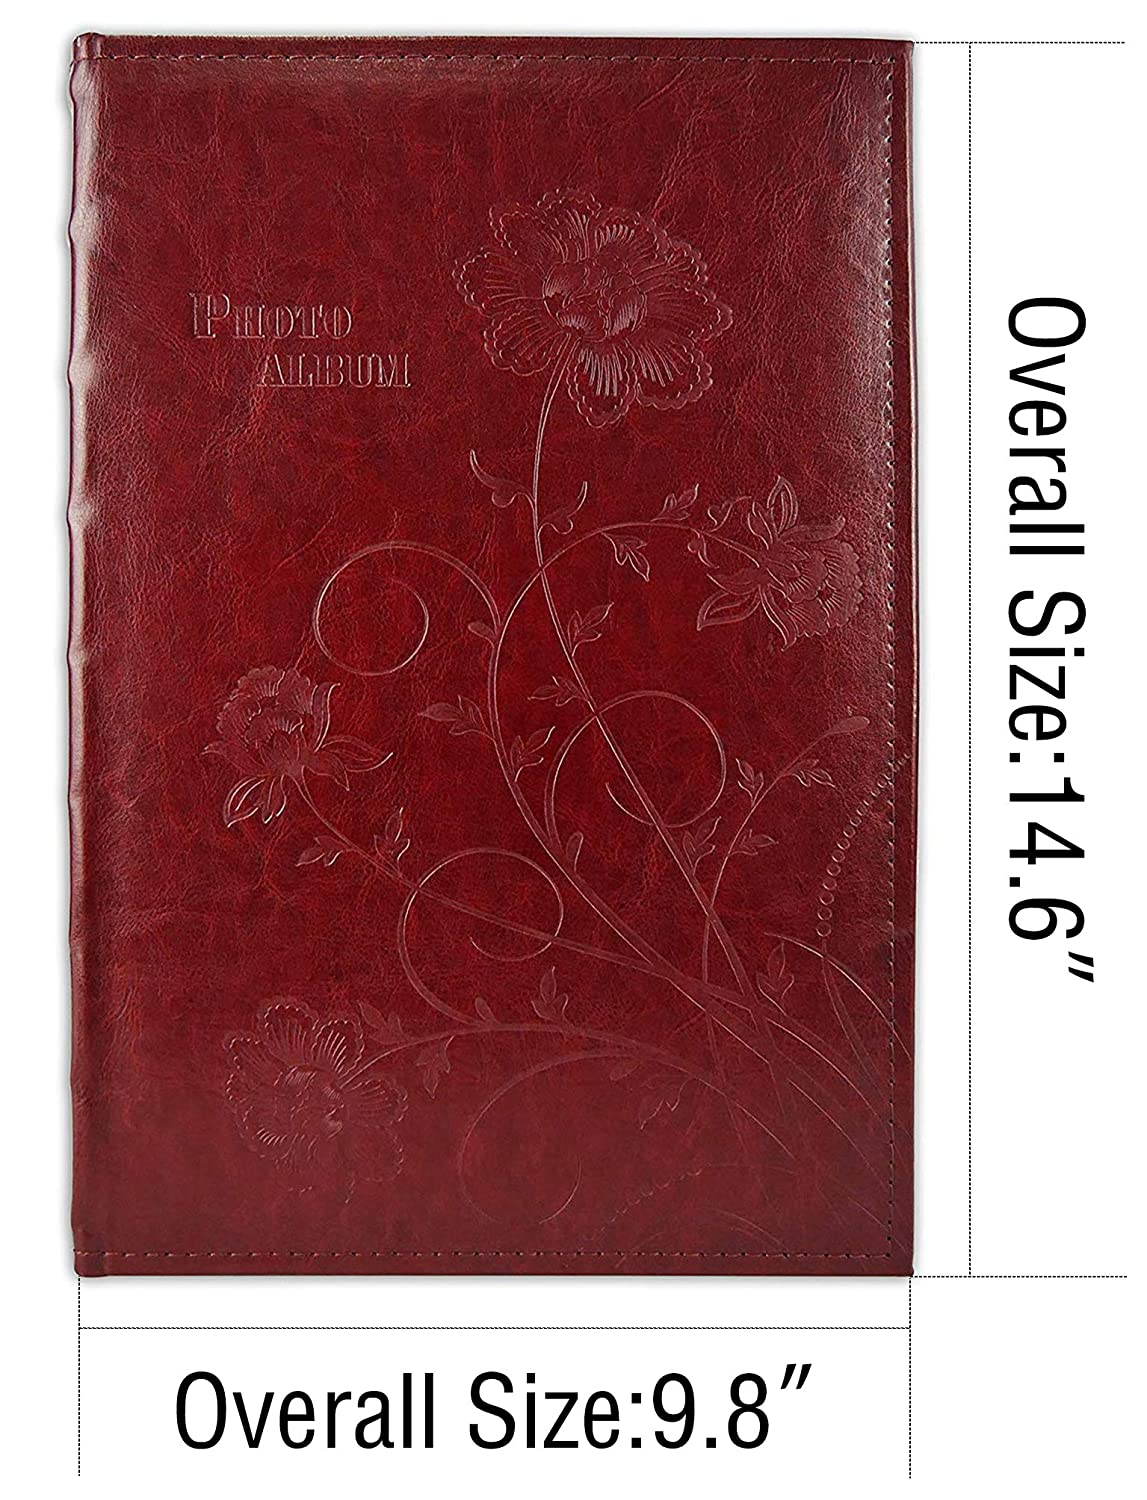 Vacation Anniversary Photography Book for 300 4x6 Pictures Pockets with Memo 3 Per Page Large Capacity Maroon Faux Leather Vintage Golden State Art Wedding Family Baby Dog Photo Album Christmas